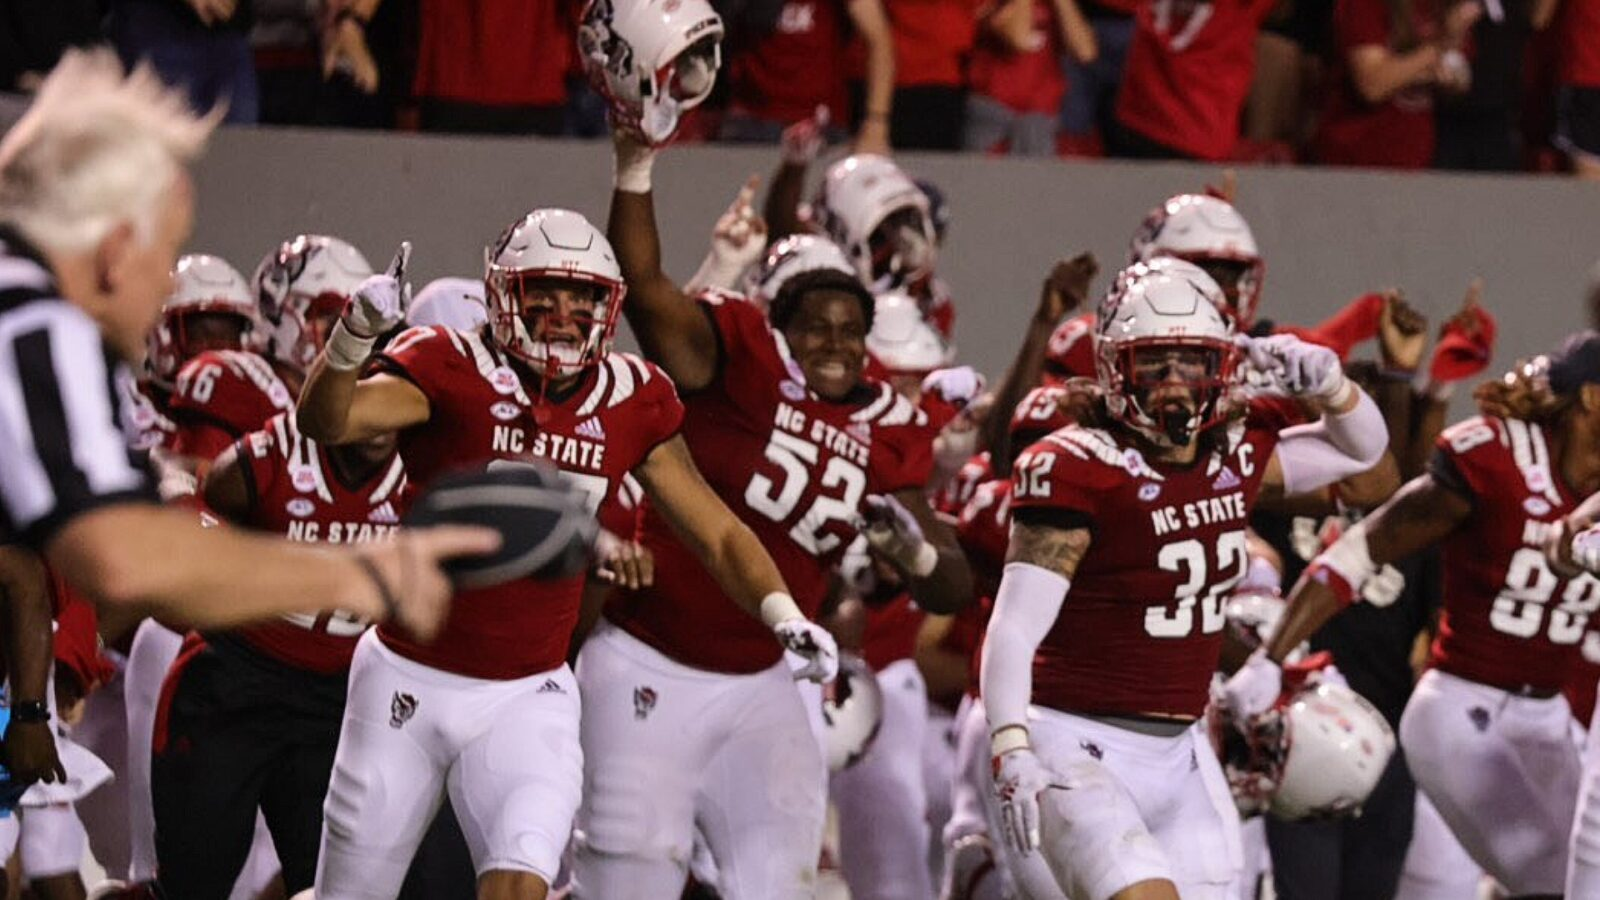 Unranked NC State stuns No. 9 Clemson in 2OT